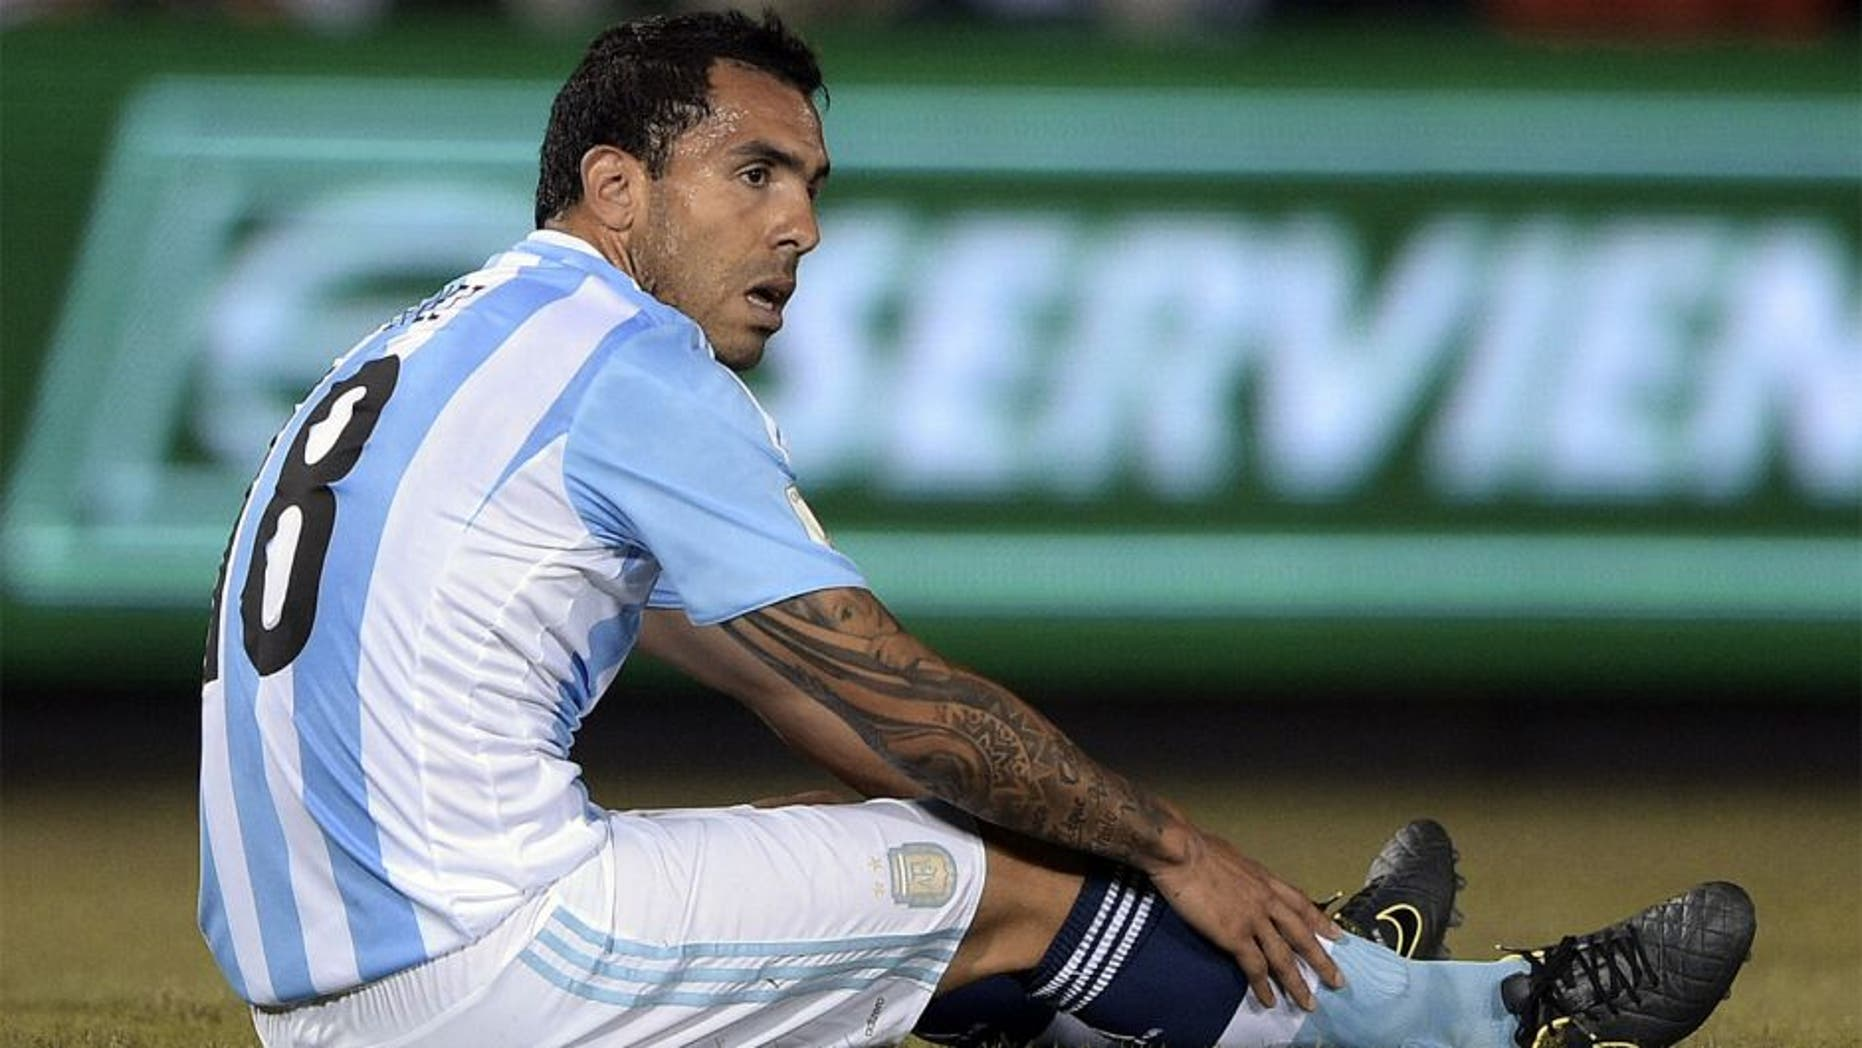 Argentina's forward Carlos Tevez sits on the ground during the Russia 2018 FIFA World Cup South American Qualifiers football match against Paraguay, at the Defensores del Chaco stadium in Asuncion, on October 13, 2015. AFP PHOTO / JUAN MABROMATA (Photo credit should read JUAN MABROMATA/AFP/Getty Images)